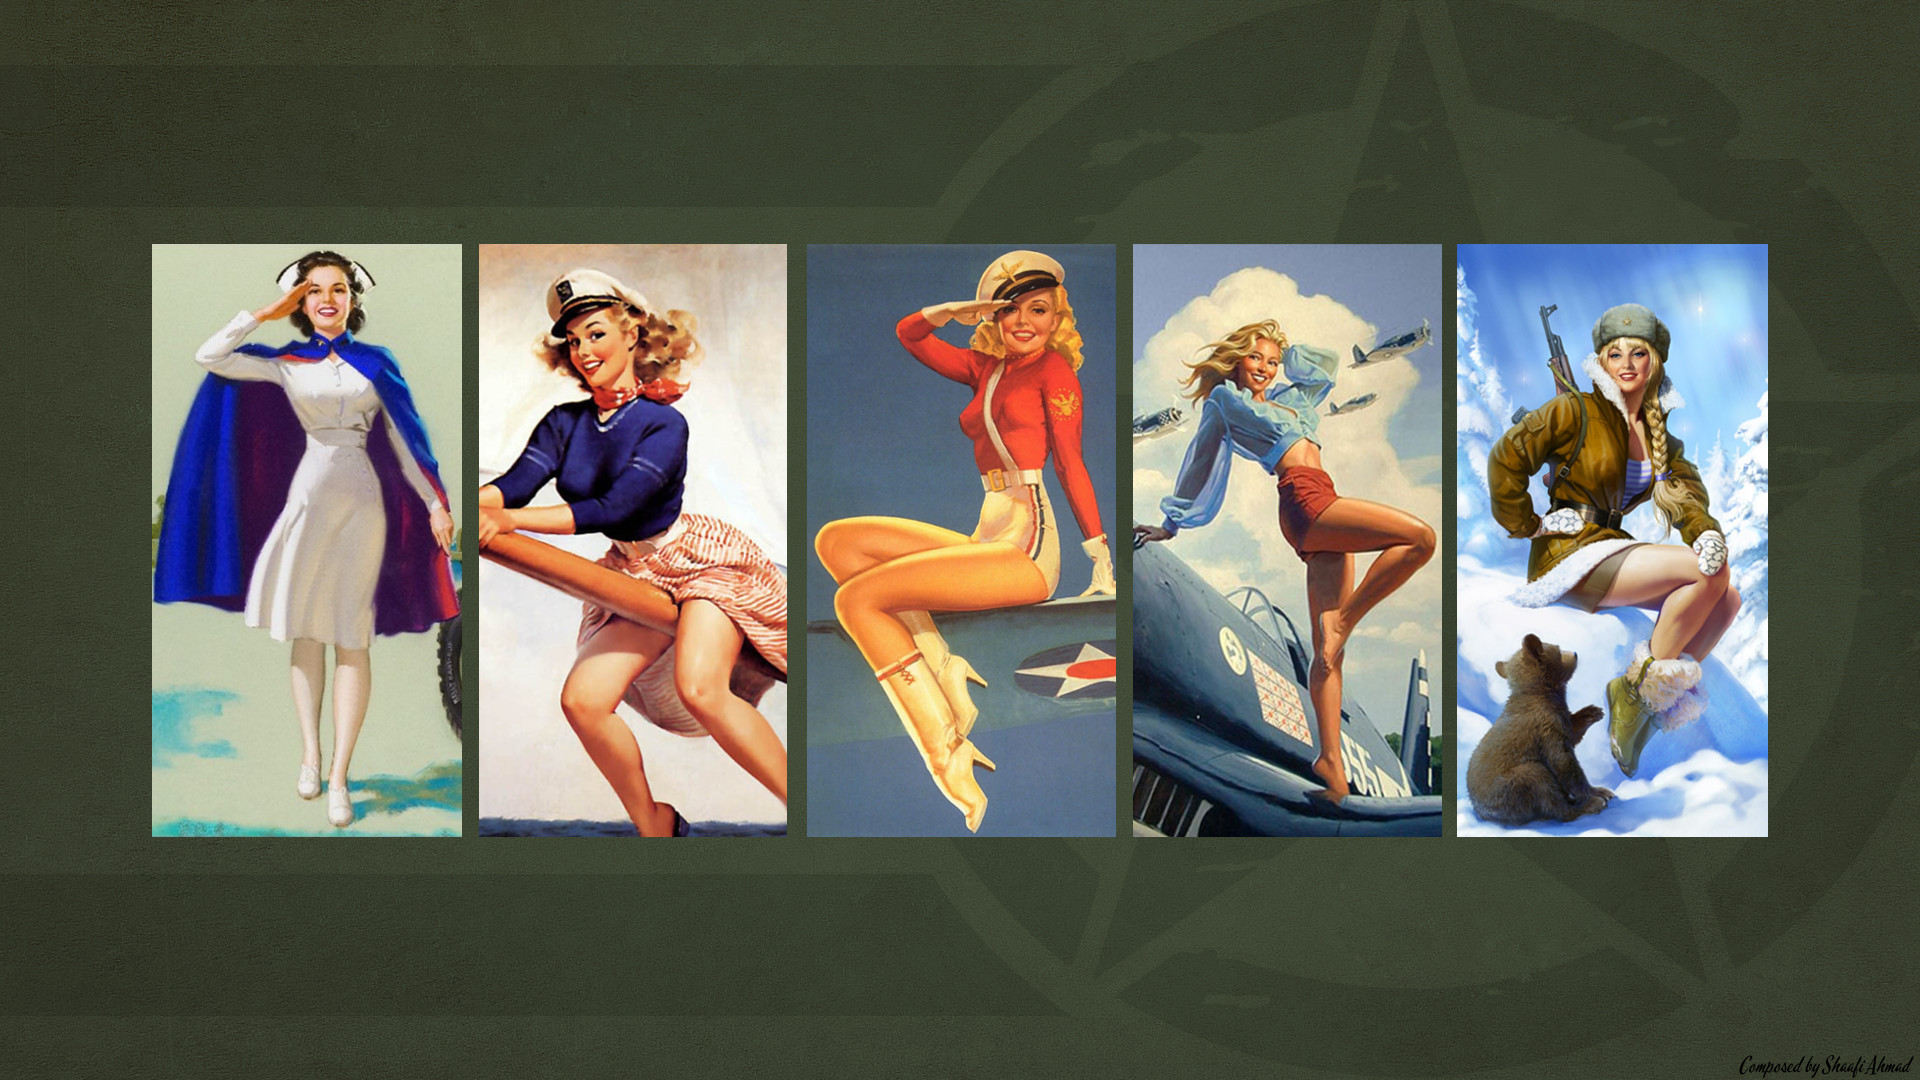 Army Themed Pin Up Wallpaper. 2 yrs · coolfield7 · r/Military